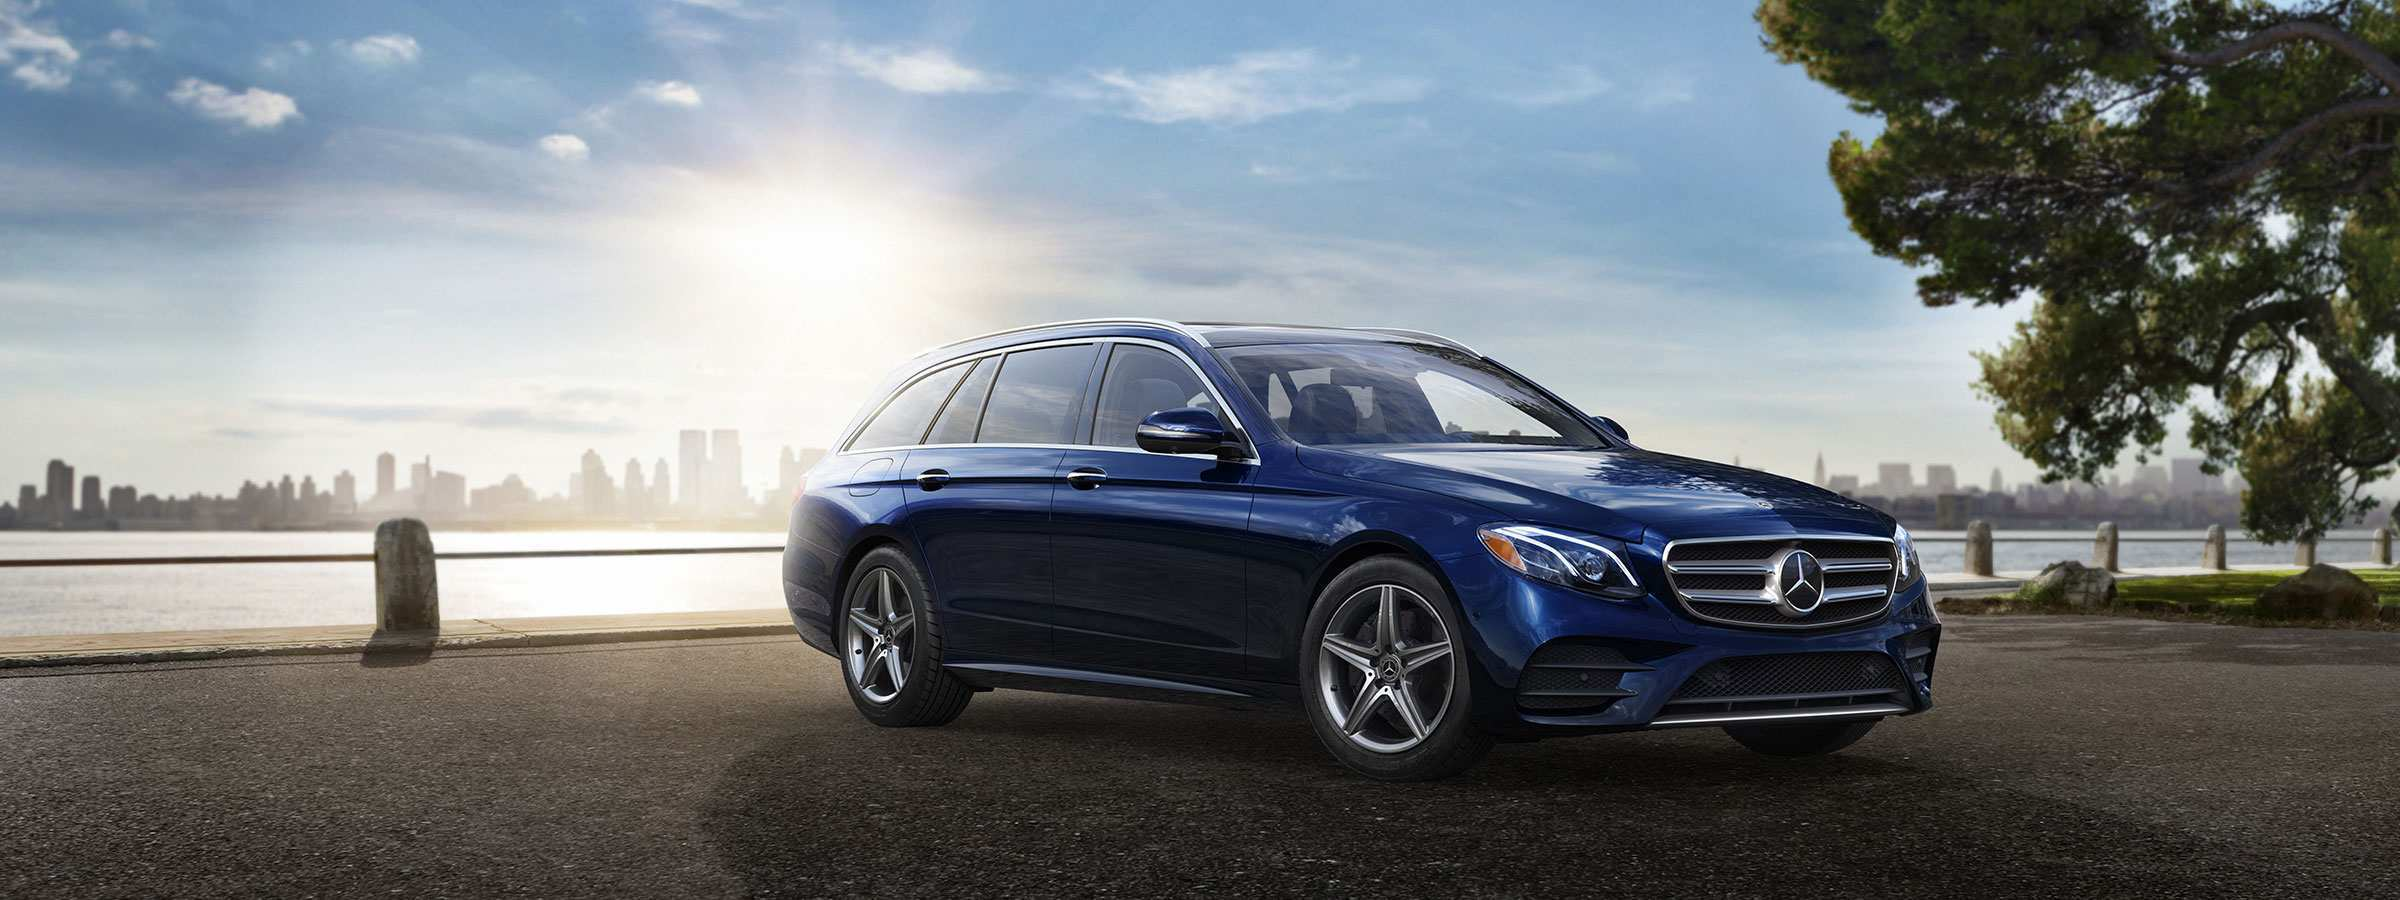 89 The Best Mercedes 2019 Wagon Release